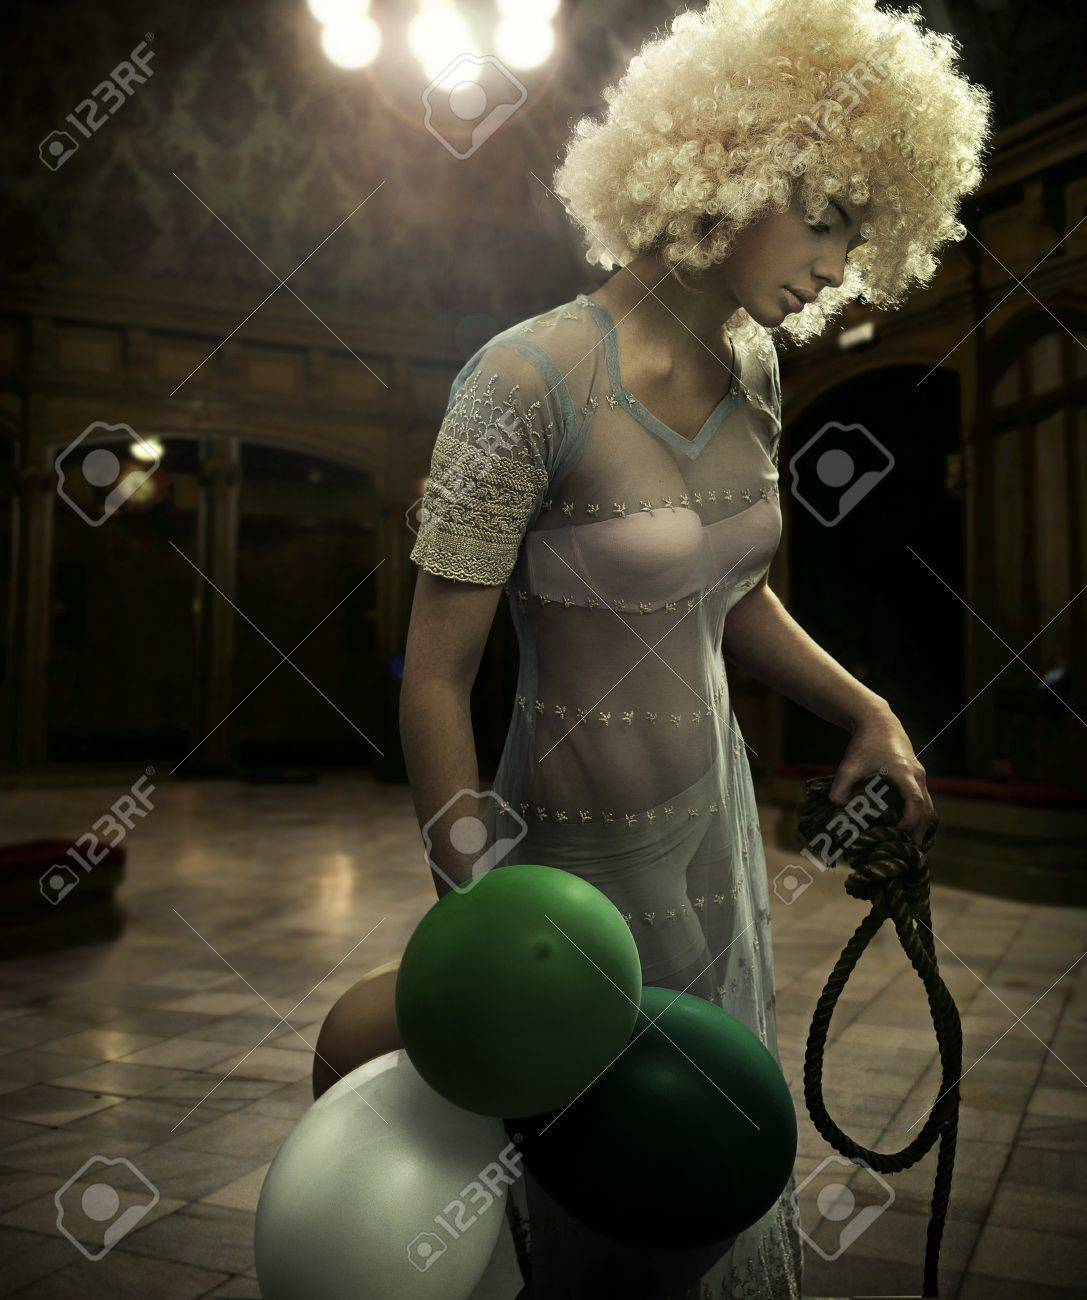 Mysterious scene of a blonde beauty in a dark interior Stock Photo - 12526248